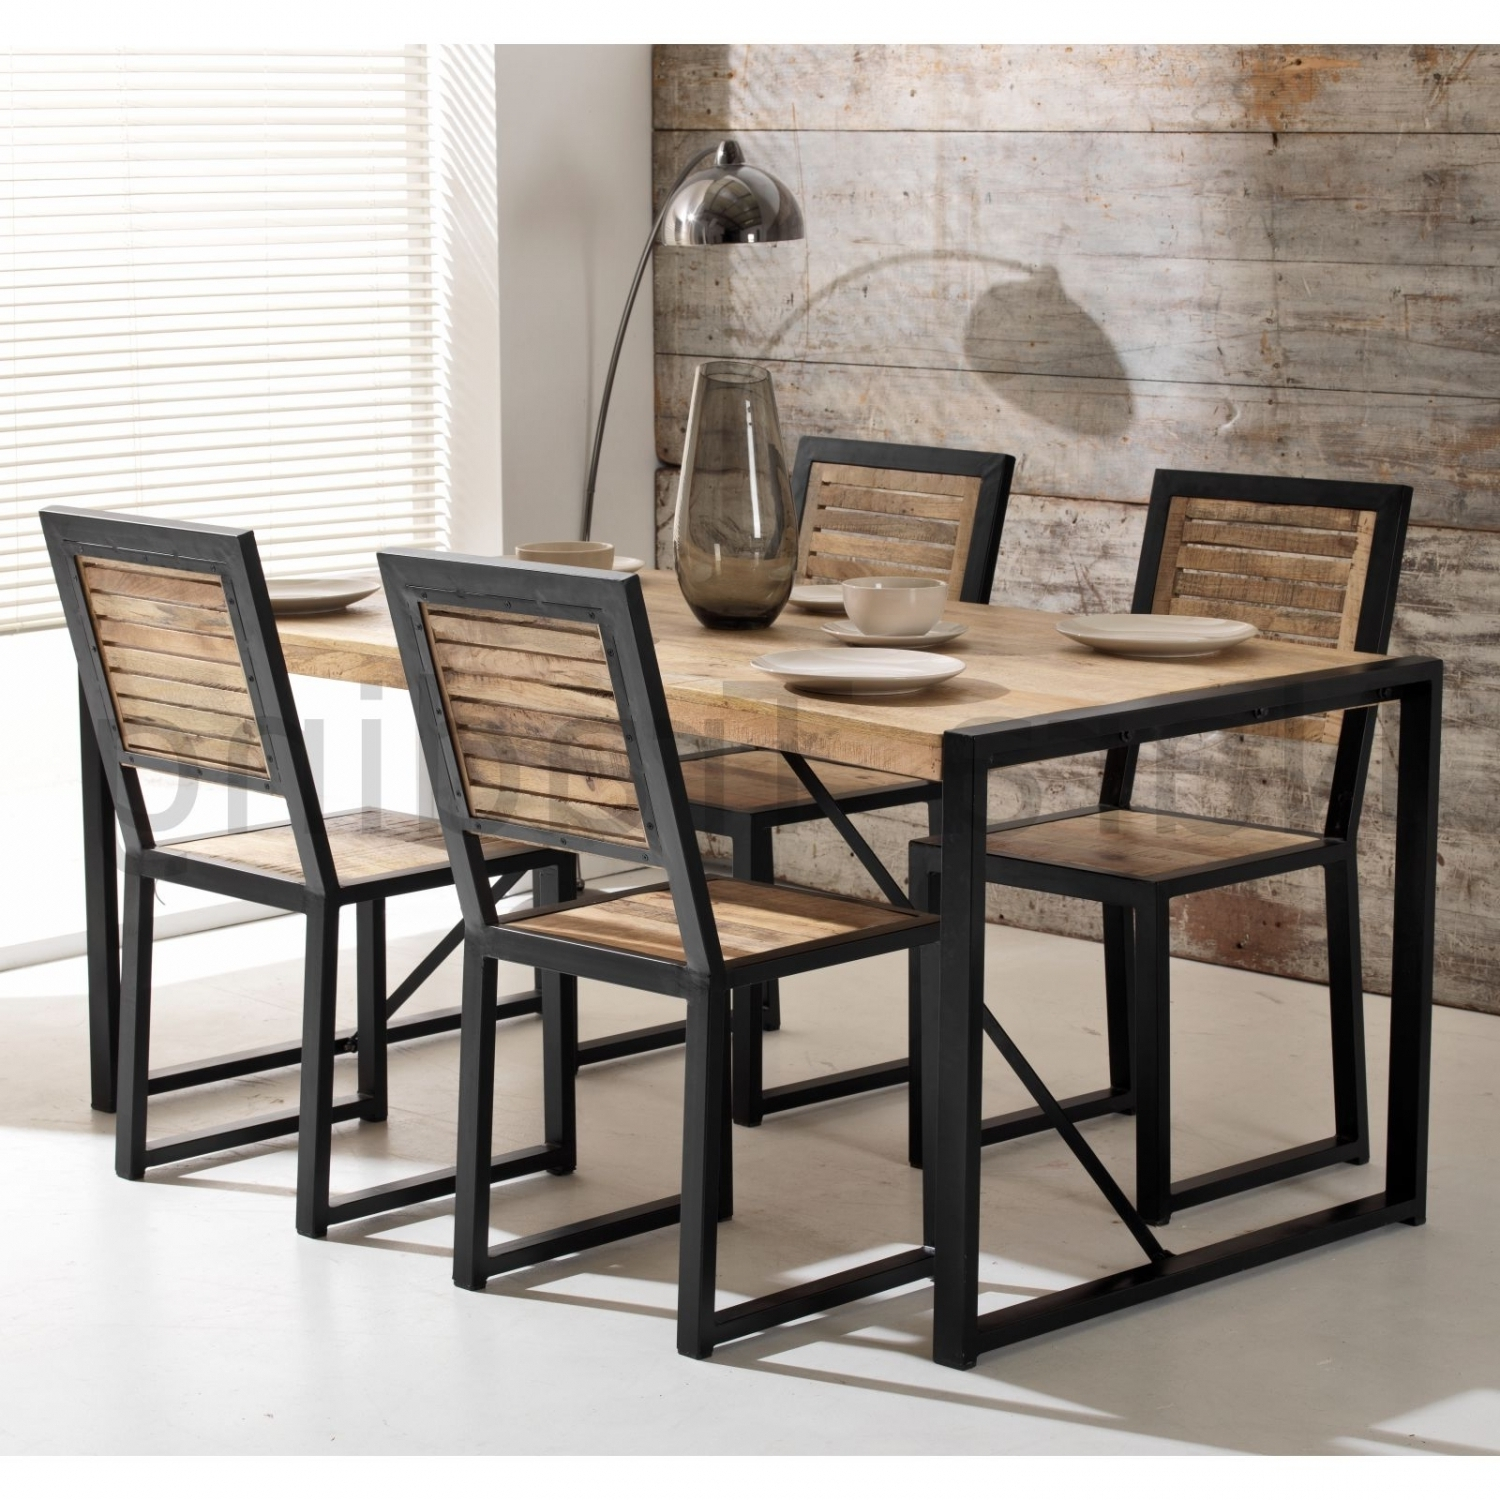 Trendy Indian Wood Dining Tables In Harbour Indian Reclaimed Wood Furniture Dining Table With 4 Chairs (View 22 of 25)